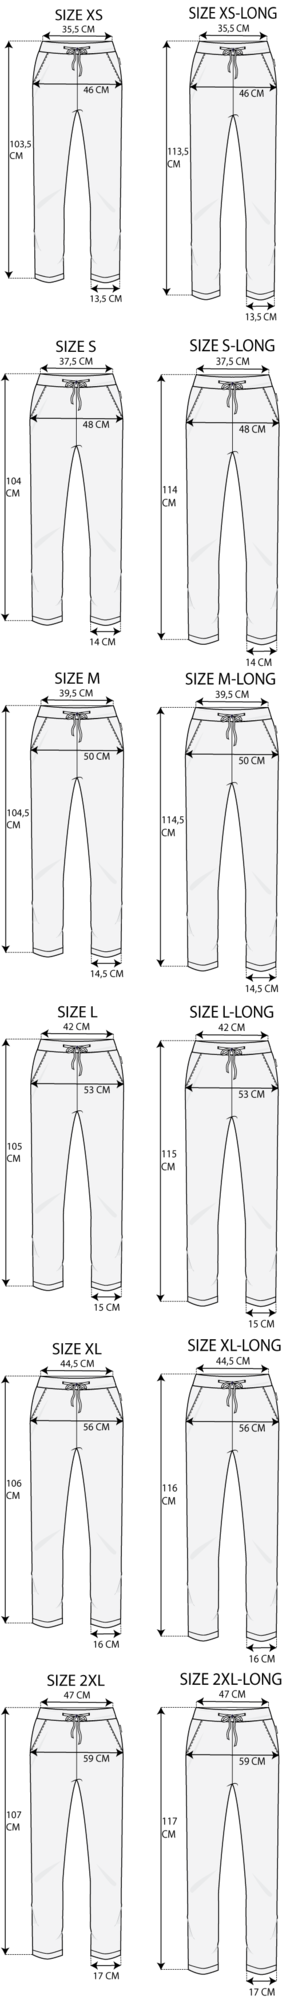 Maattabel Regular Pant